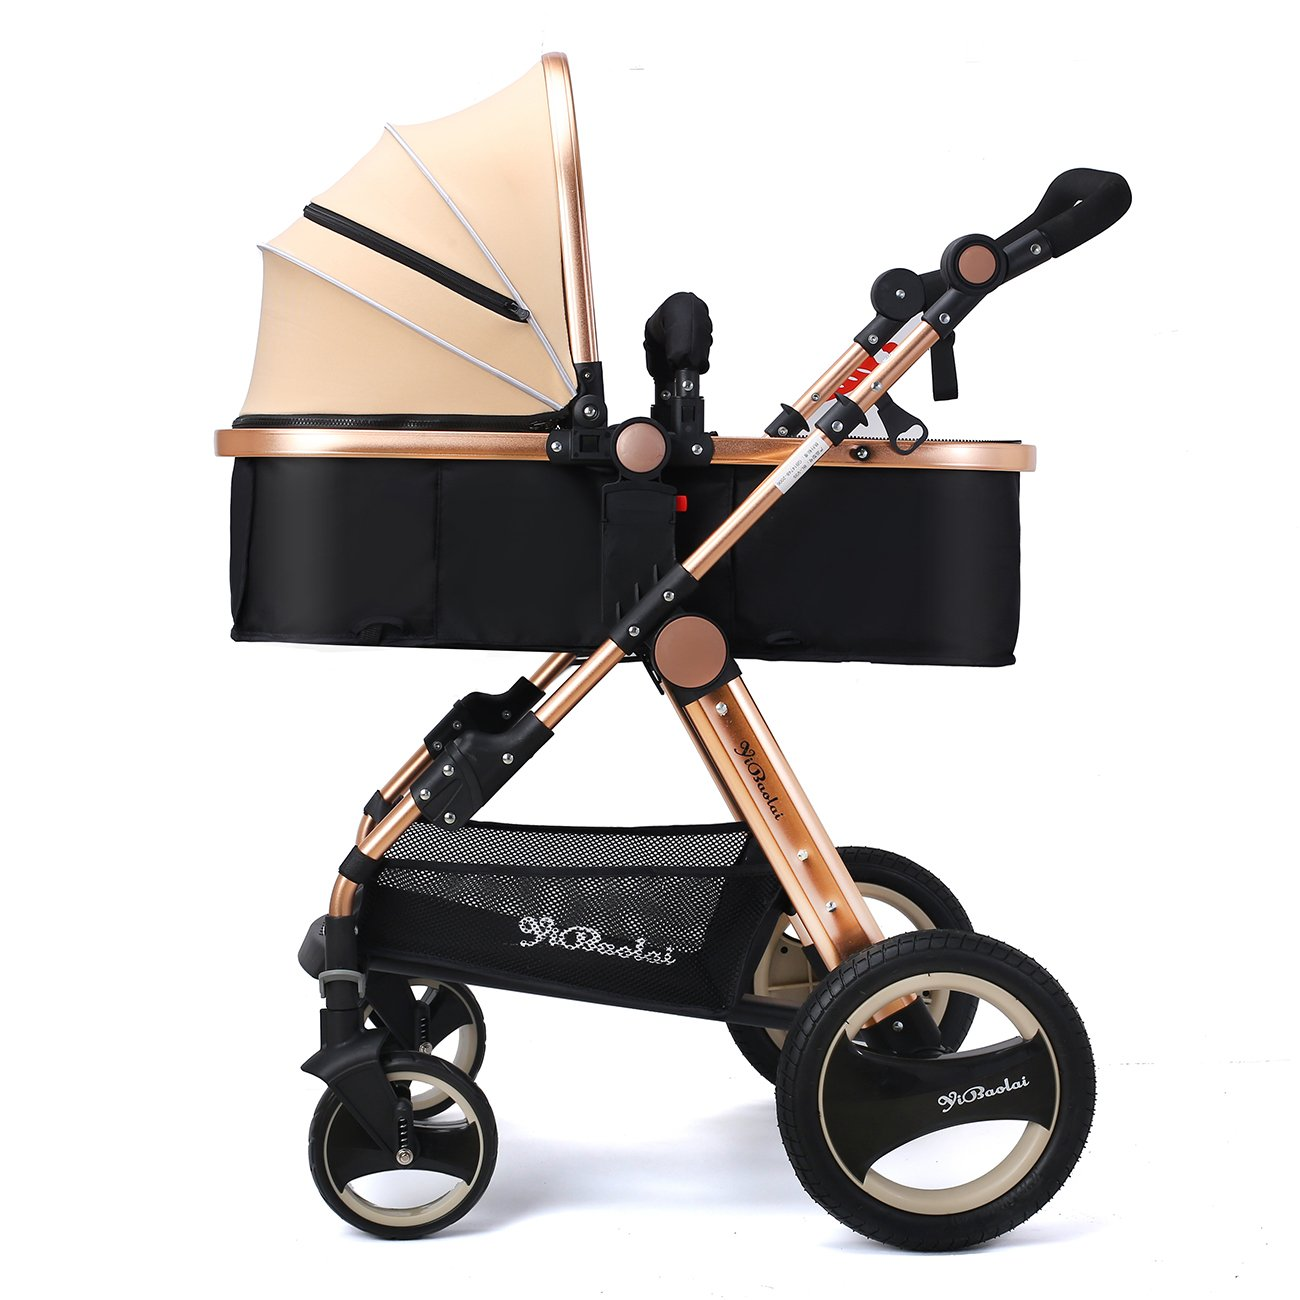 YBL Luxury Urban Toddler Umbrella Baby Stroller Lightweight Newborn Baby Carriage Two-Way Four Rounds Folding with Basket Cup Holder